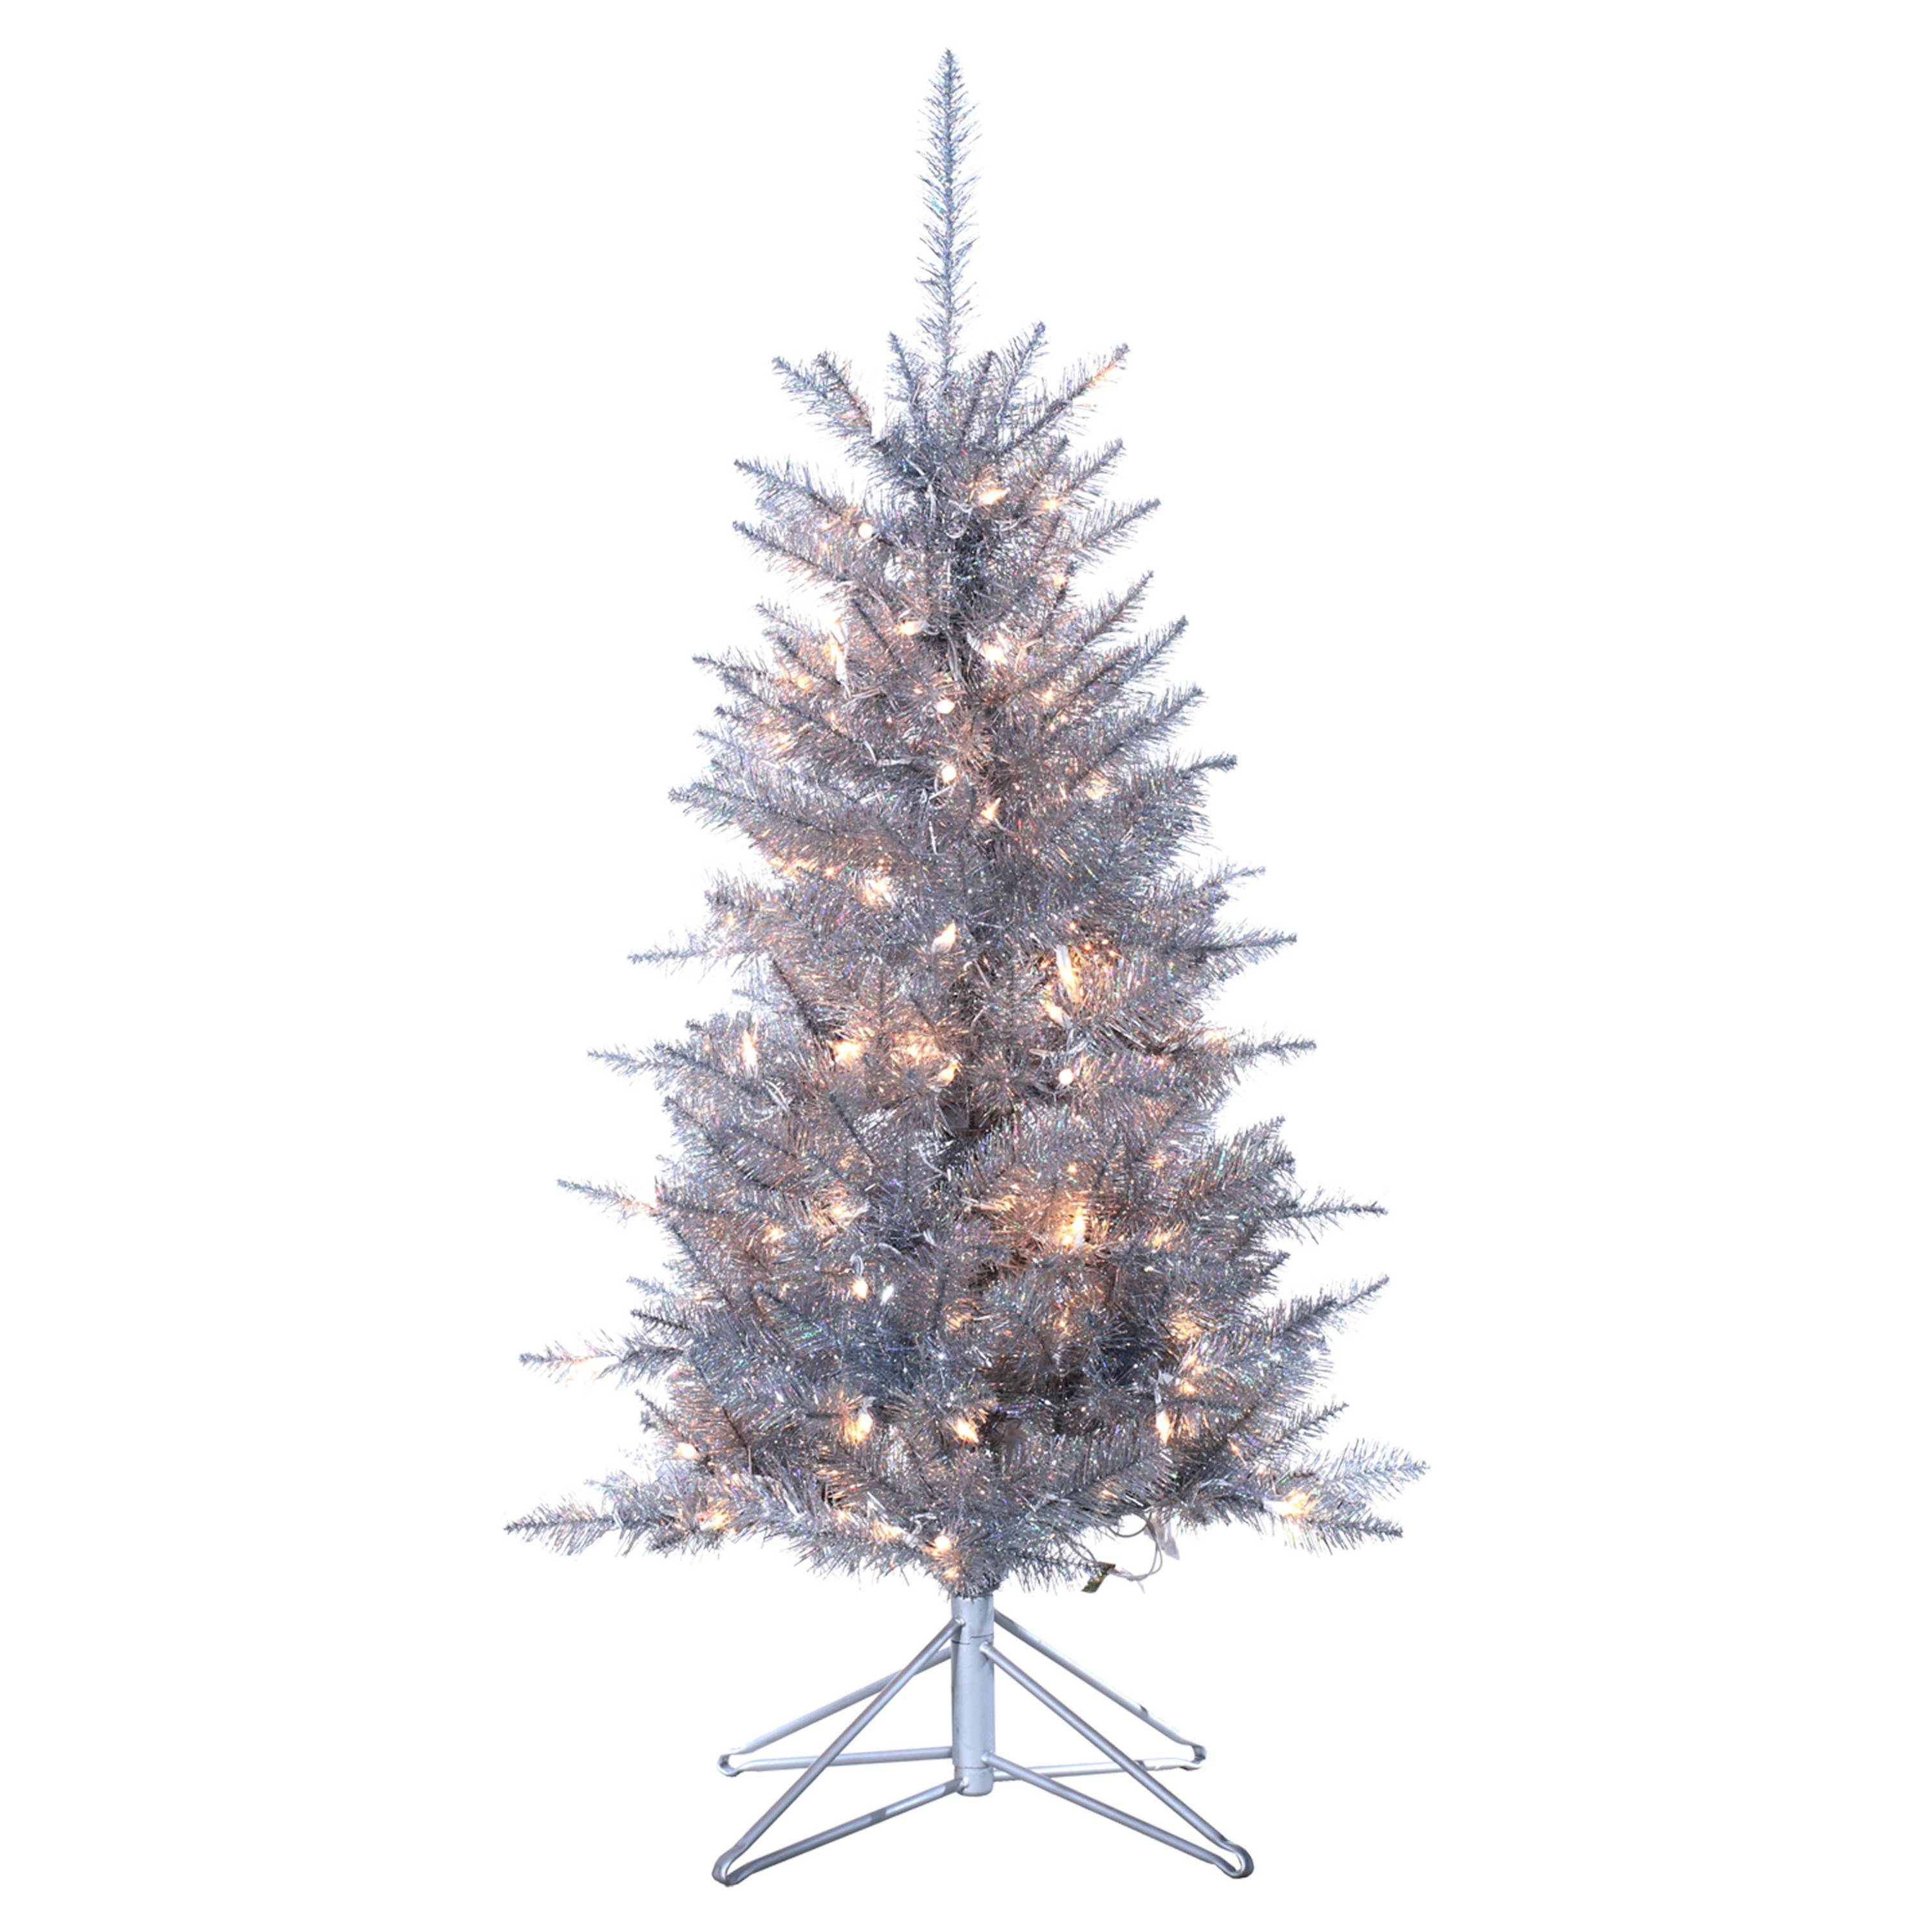 Small Silver Christmas Tree.7 Retro Christmas Trees And Wreaths To Celebrate The Season